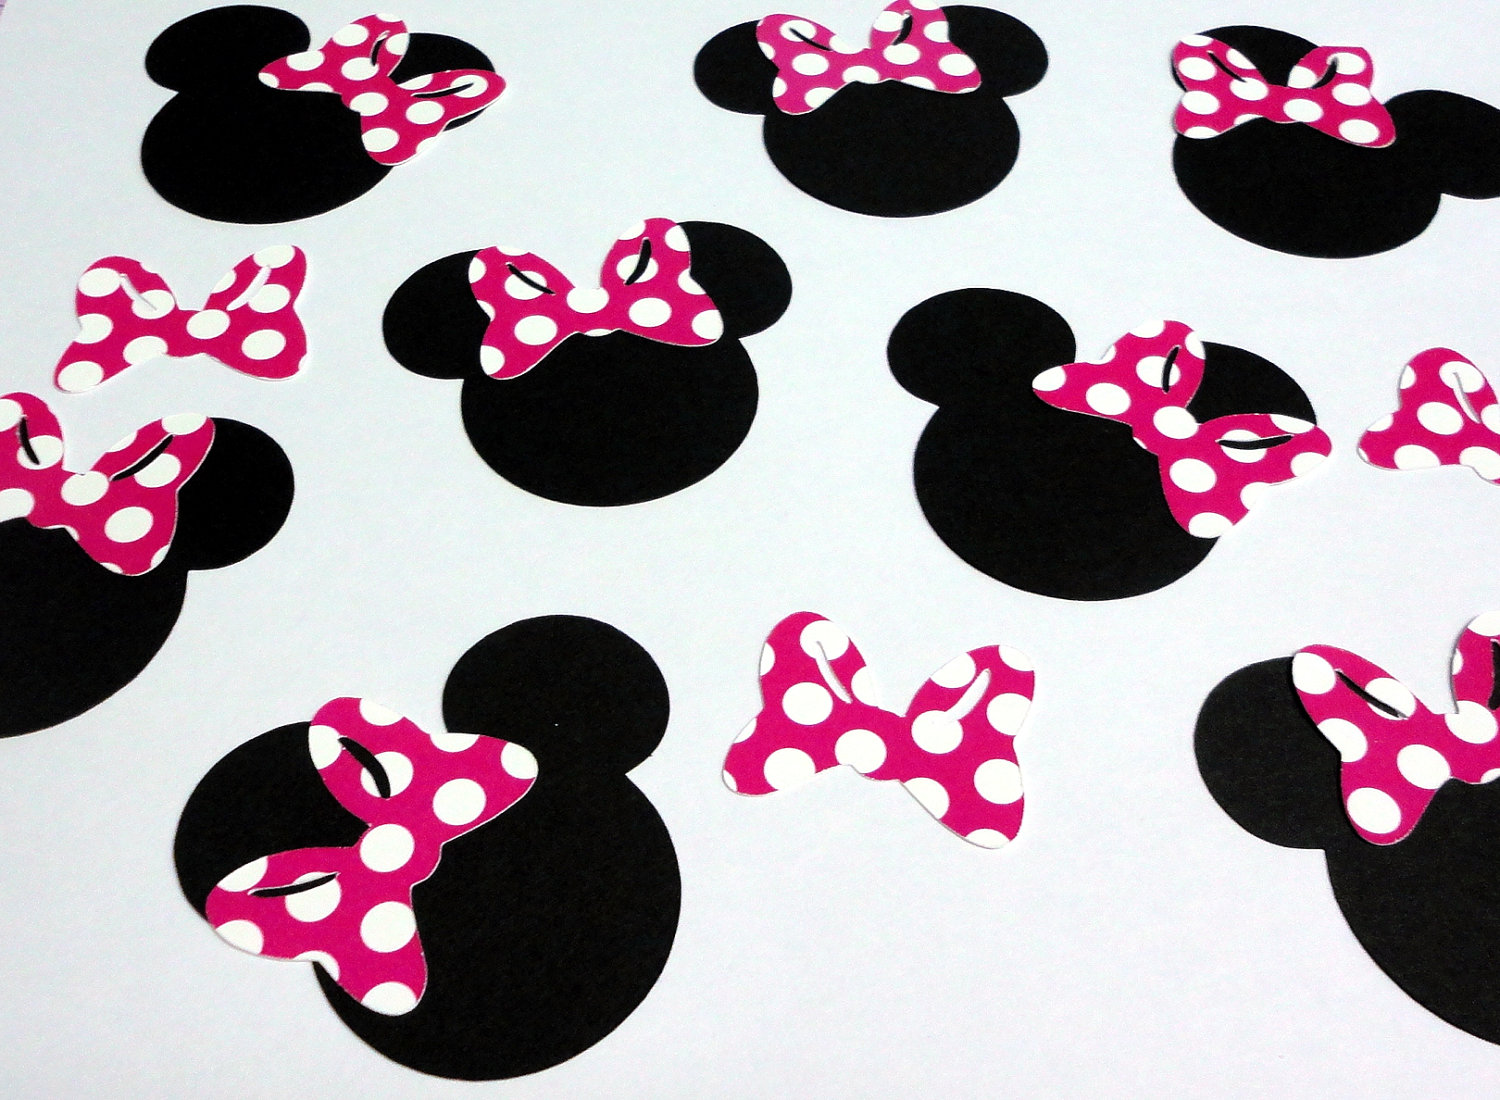 Lebron James Iphone Wallpaper Download Minnie Mouse Head Wallpaper Gallery